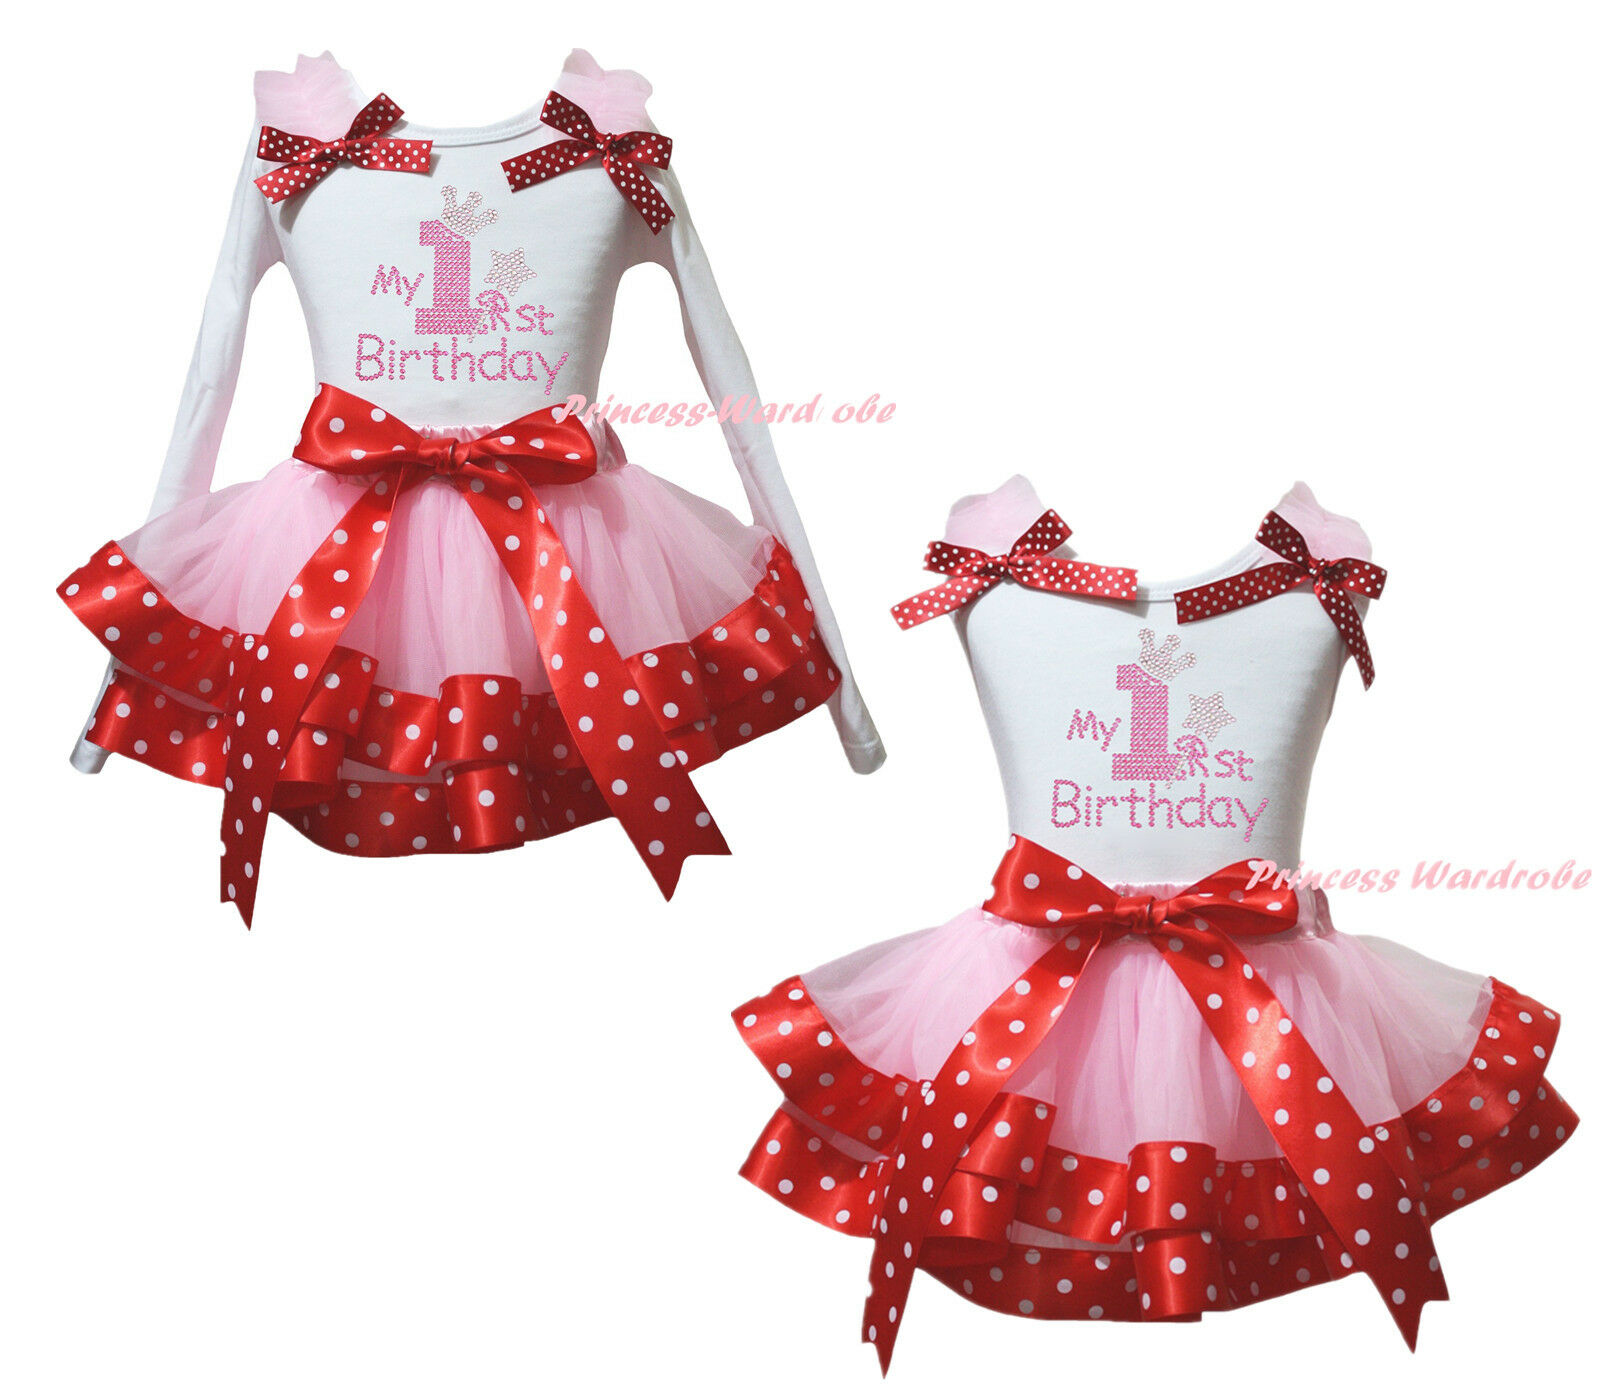 My 1ST Birthday White Cotton Top Pink Dot Satin Trim Skirt Girl Set Outfit NB-8Y